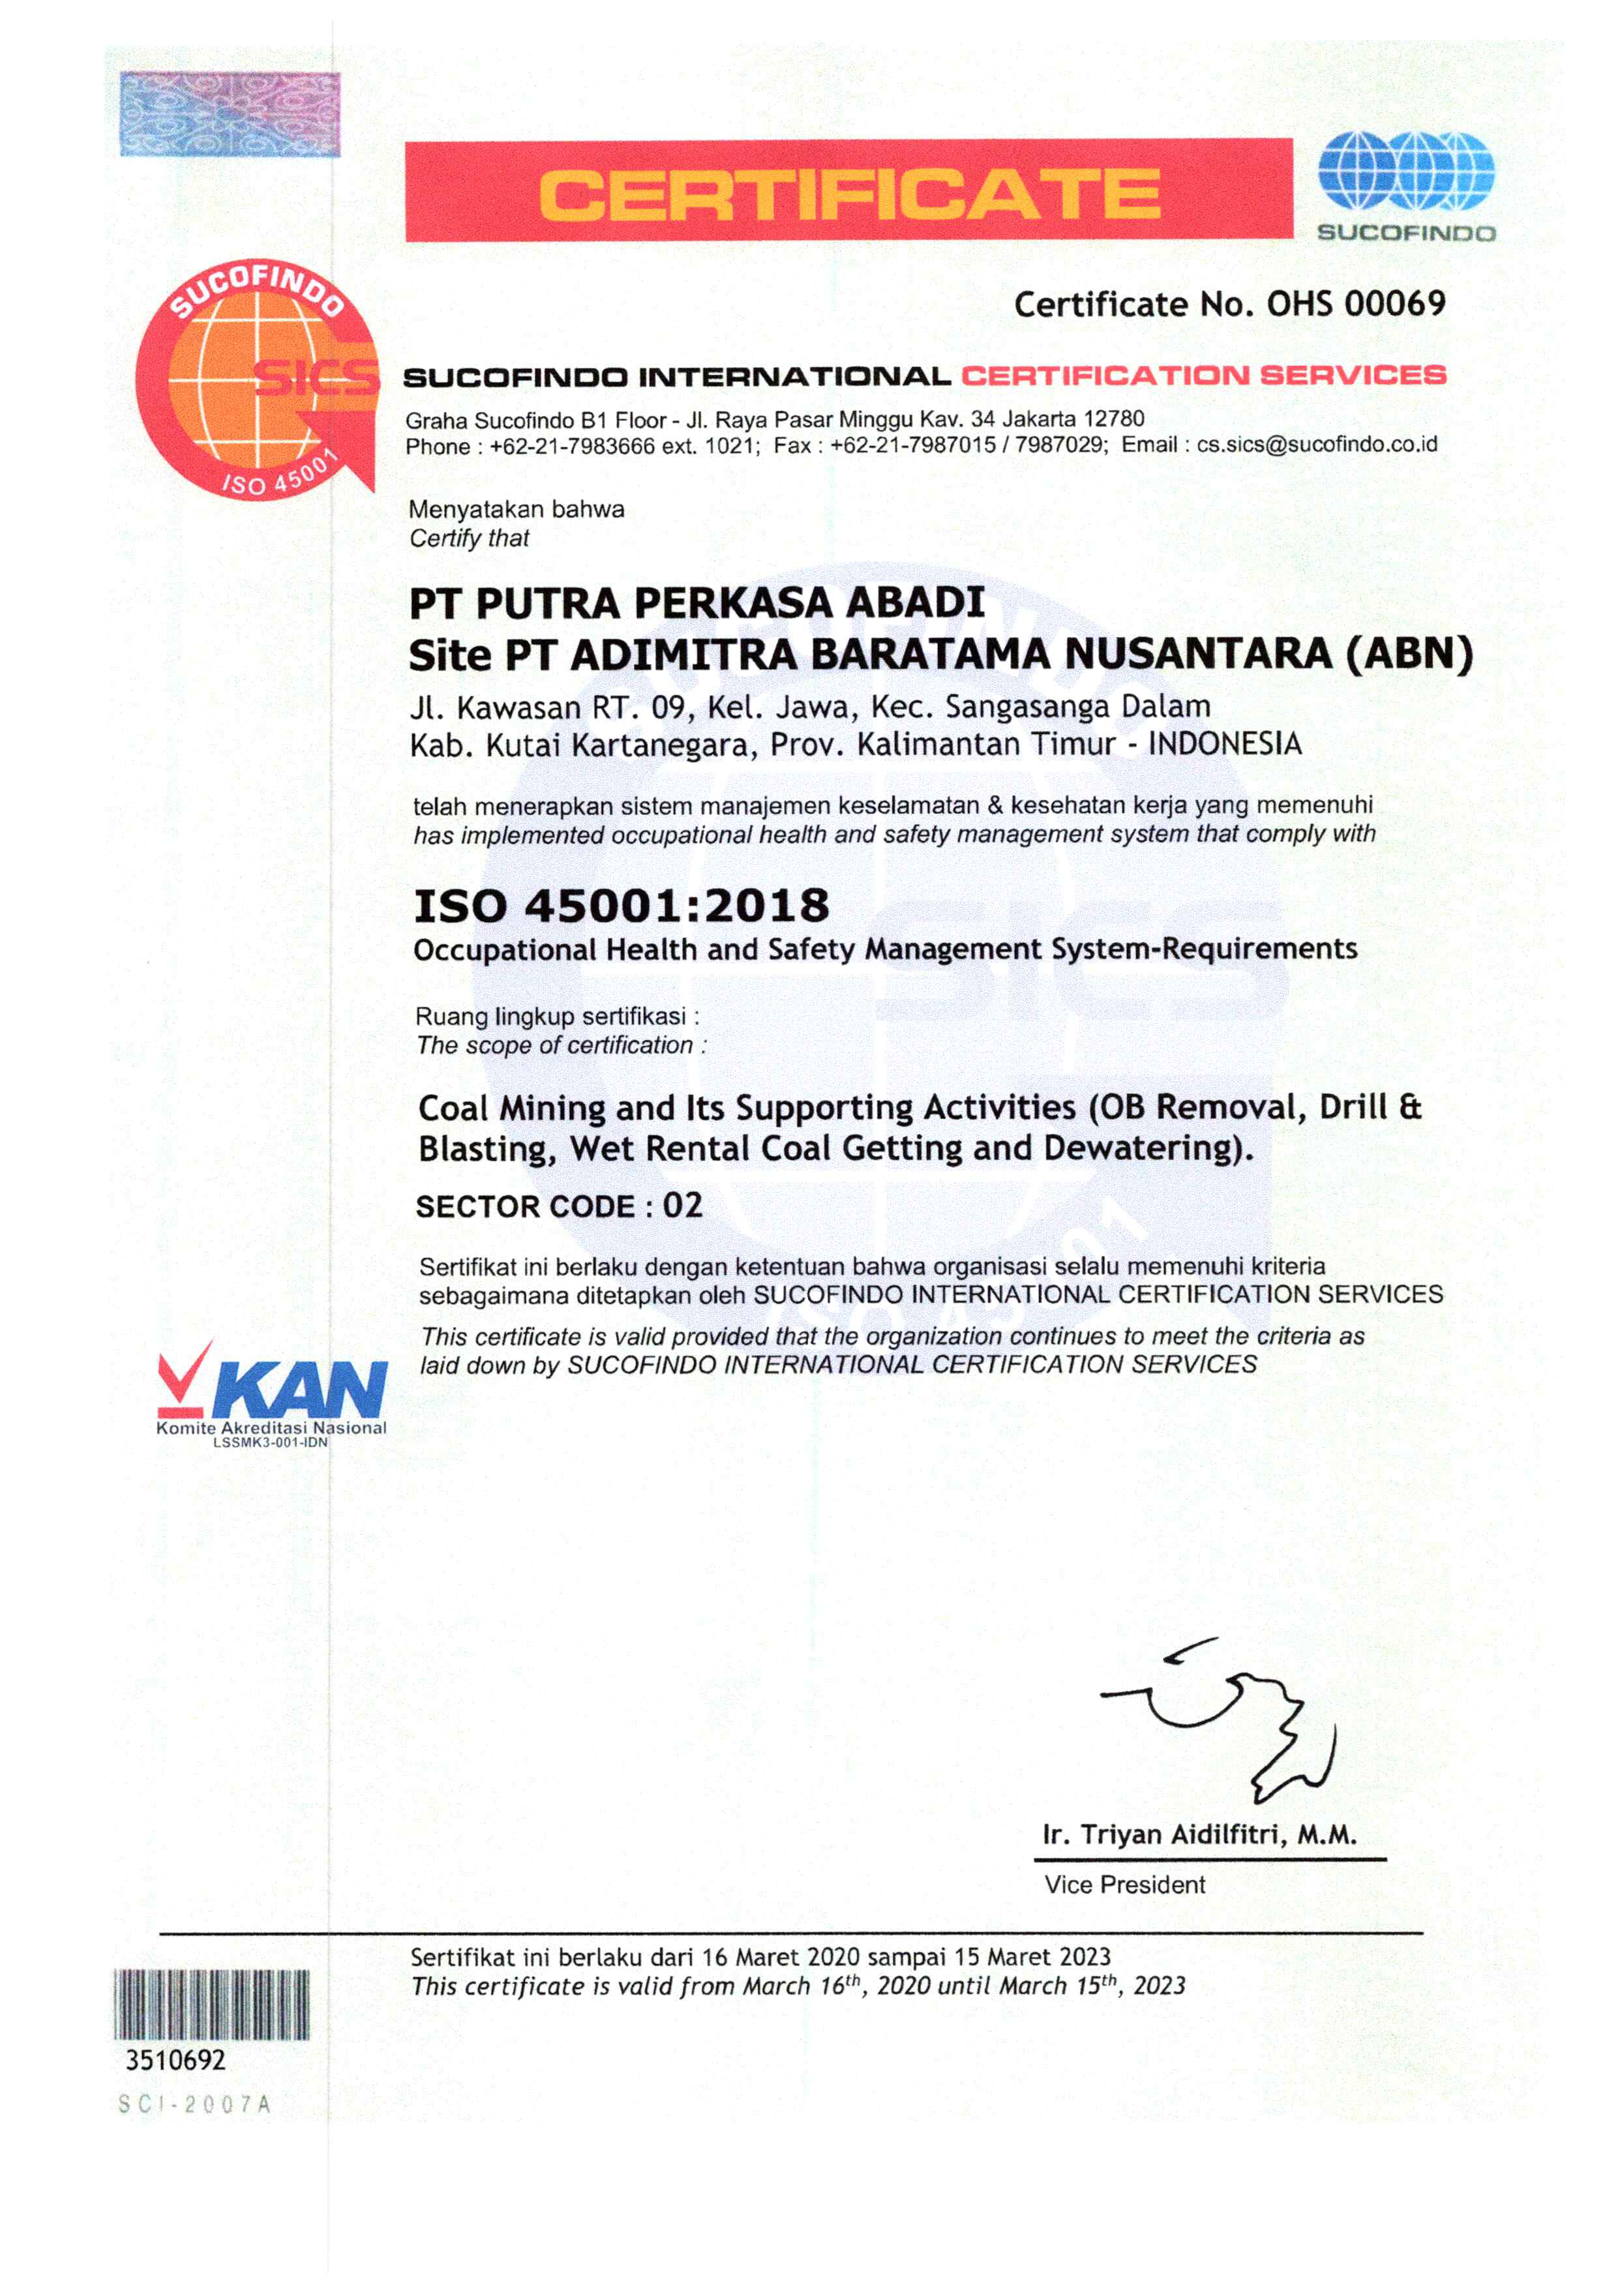 Sertifikat ISO 45001 PPA ABN_2020_Page_1